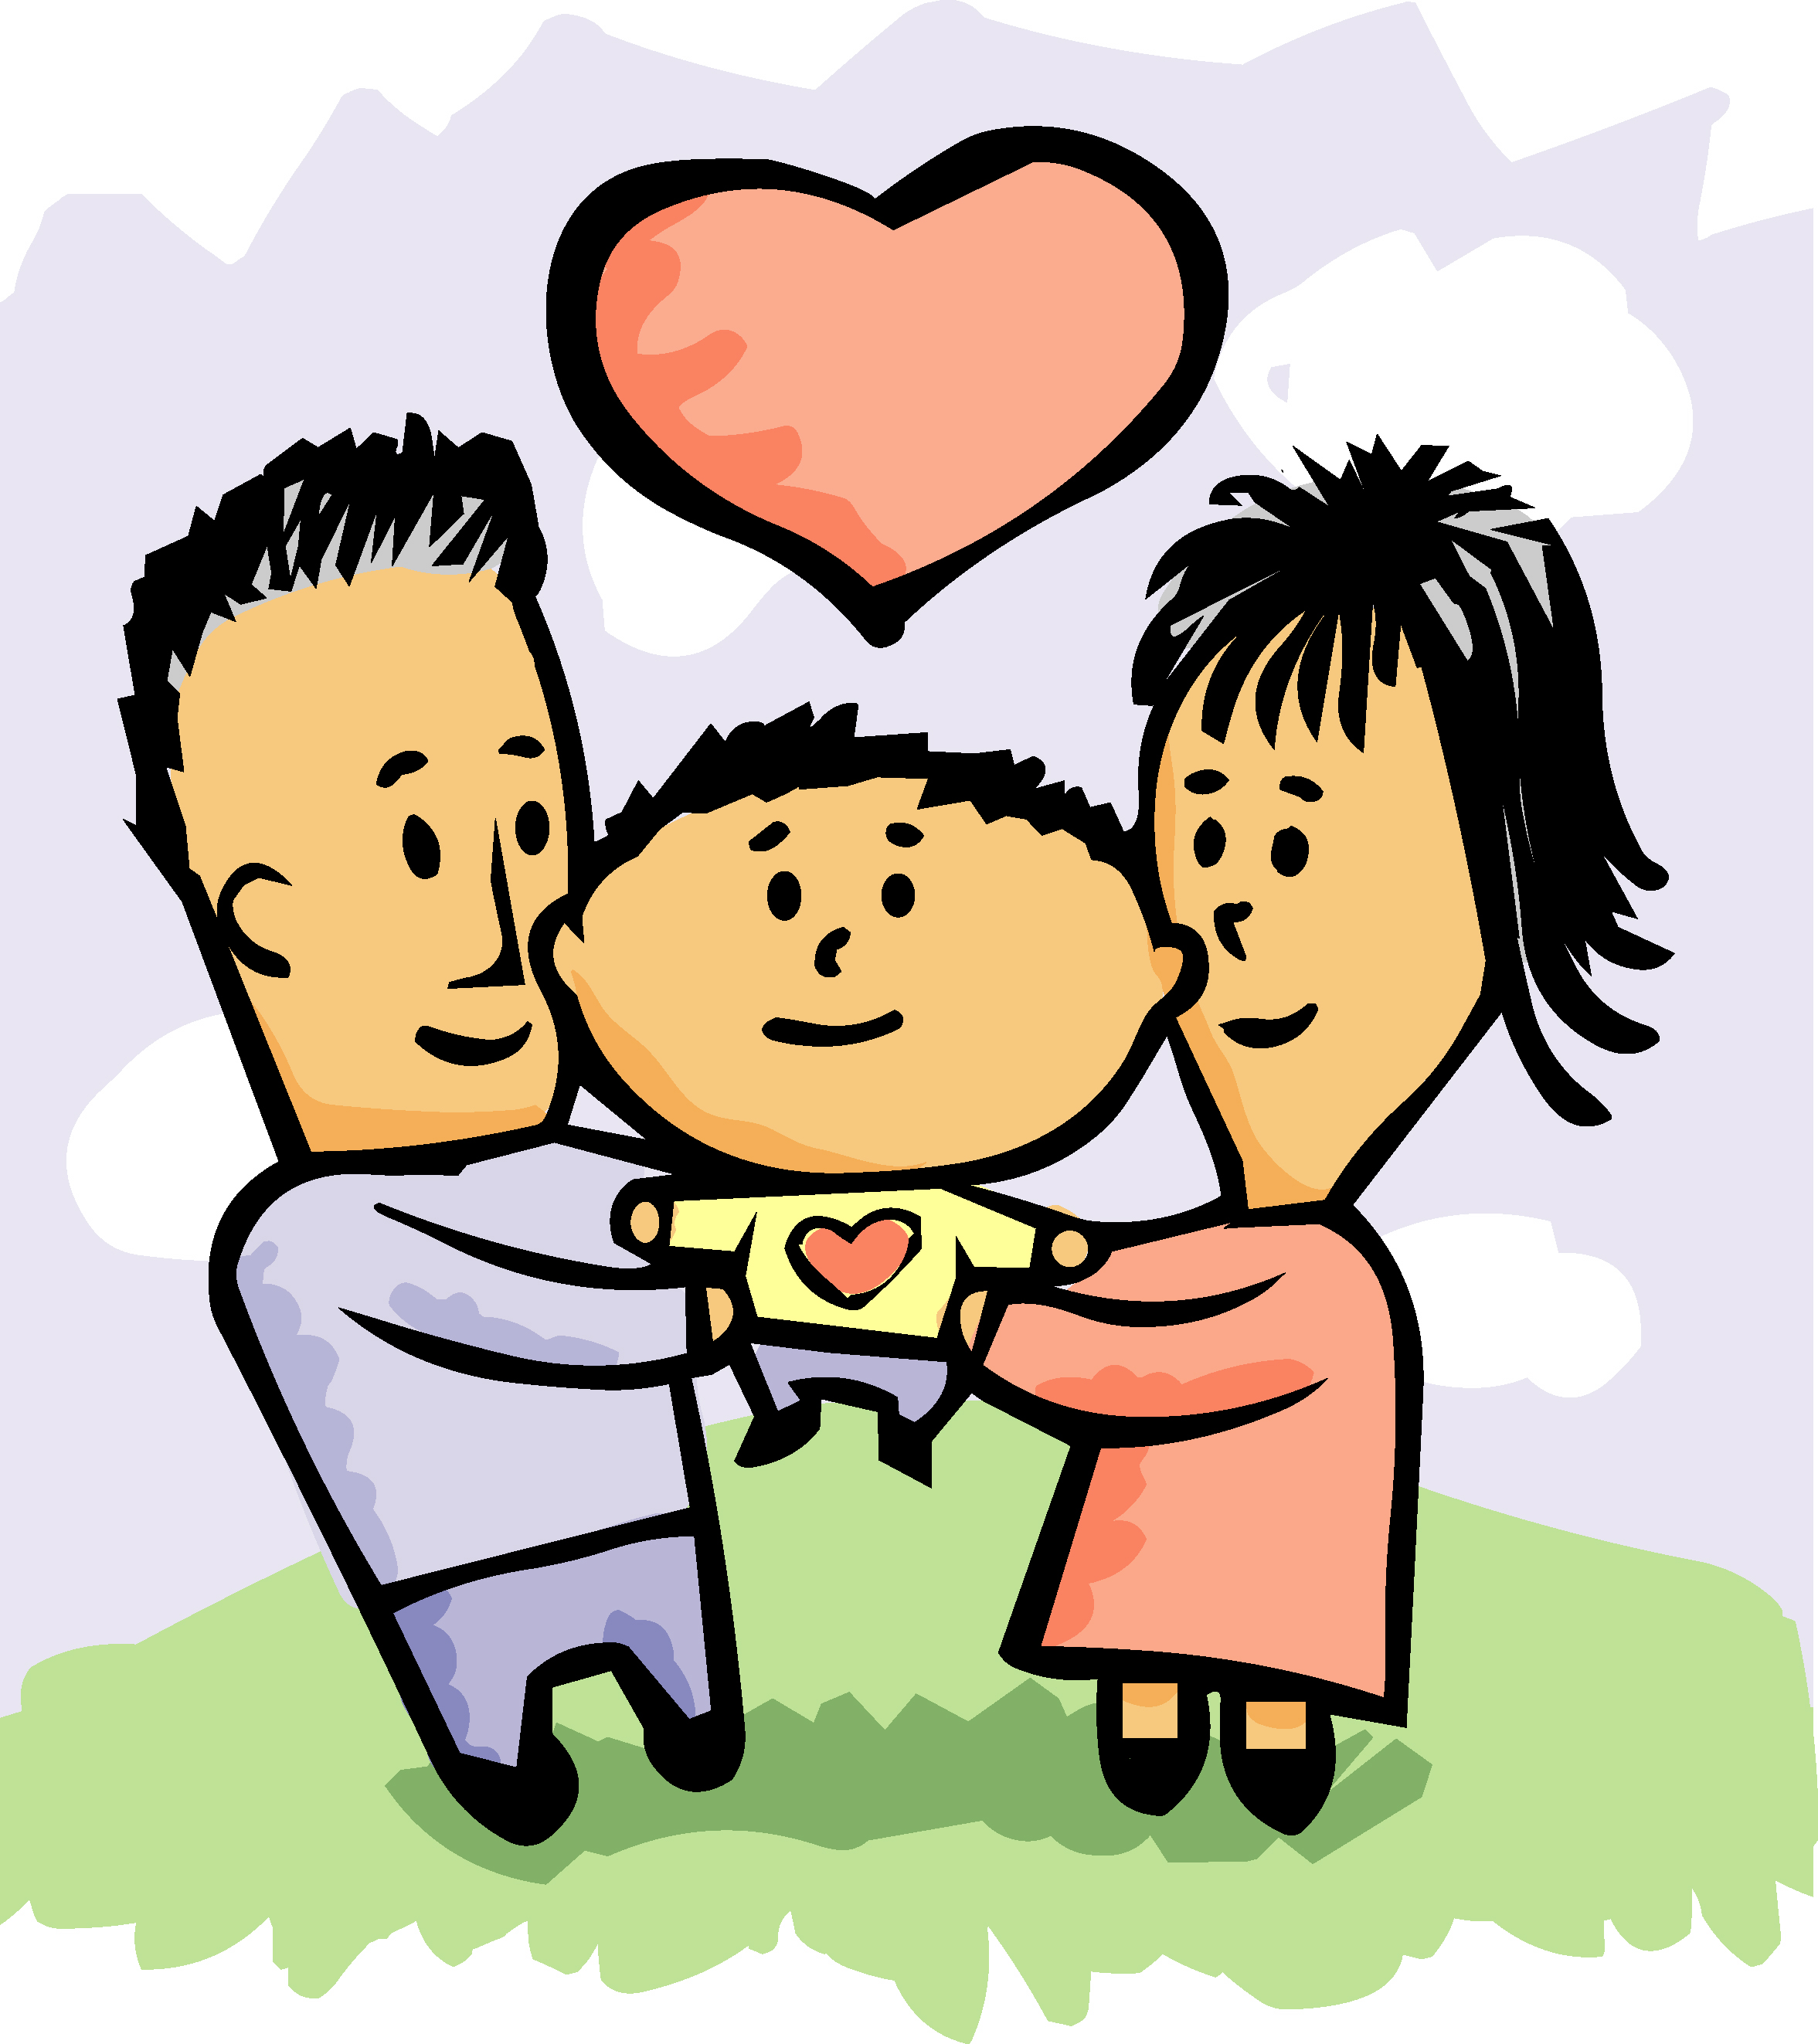 Hug clipart cuddle Zone Cliparts Yourself Hug Cliparts